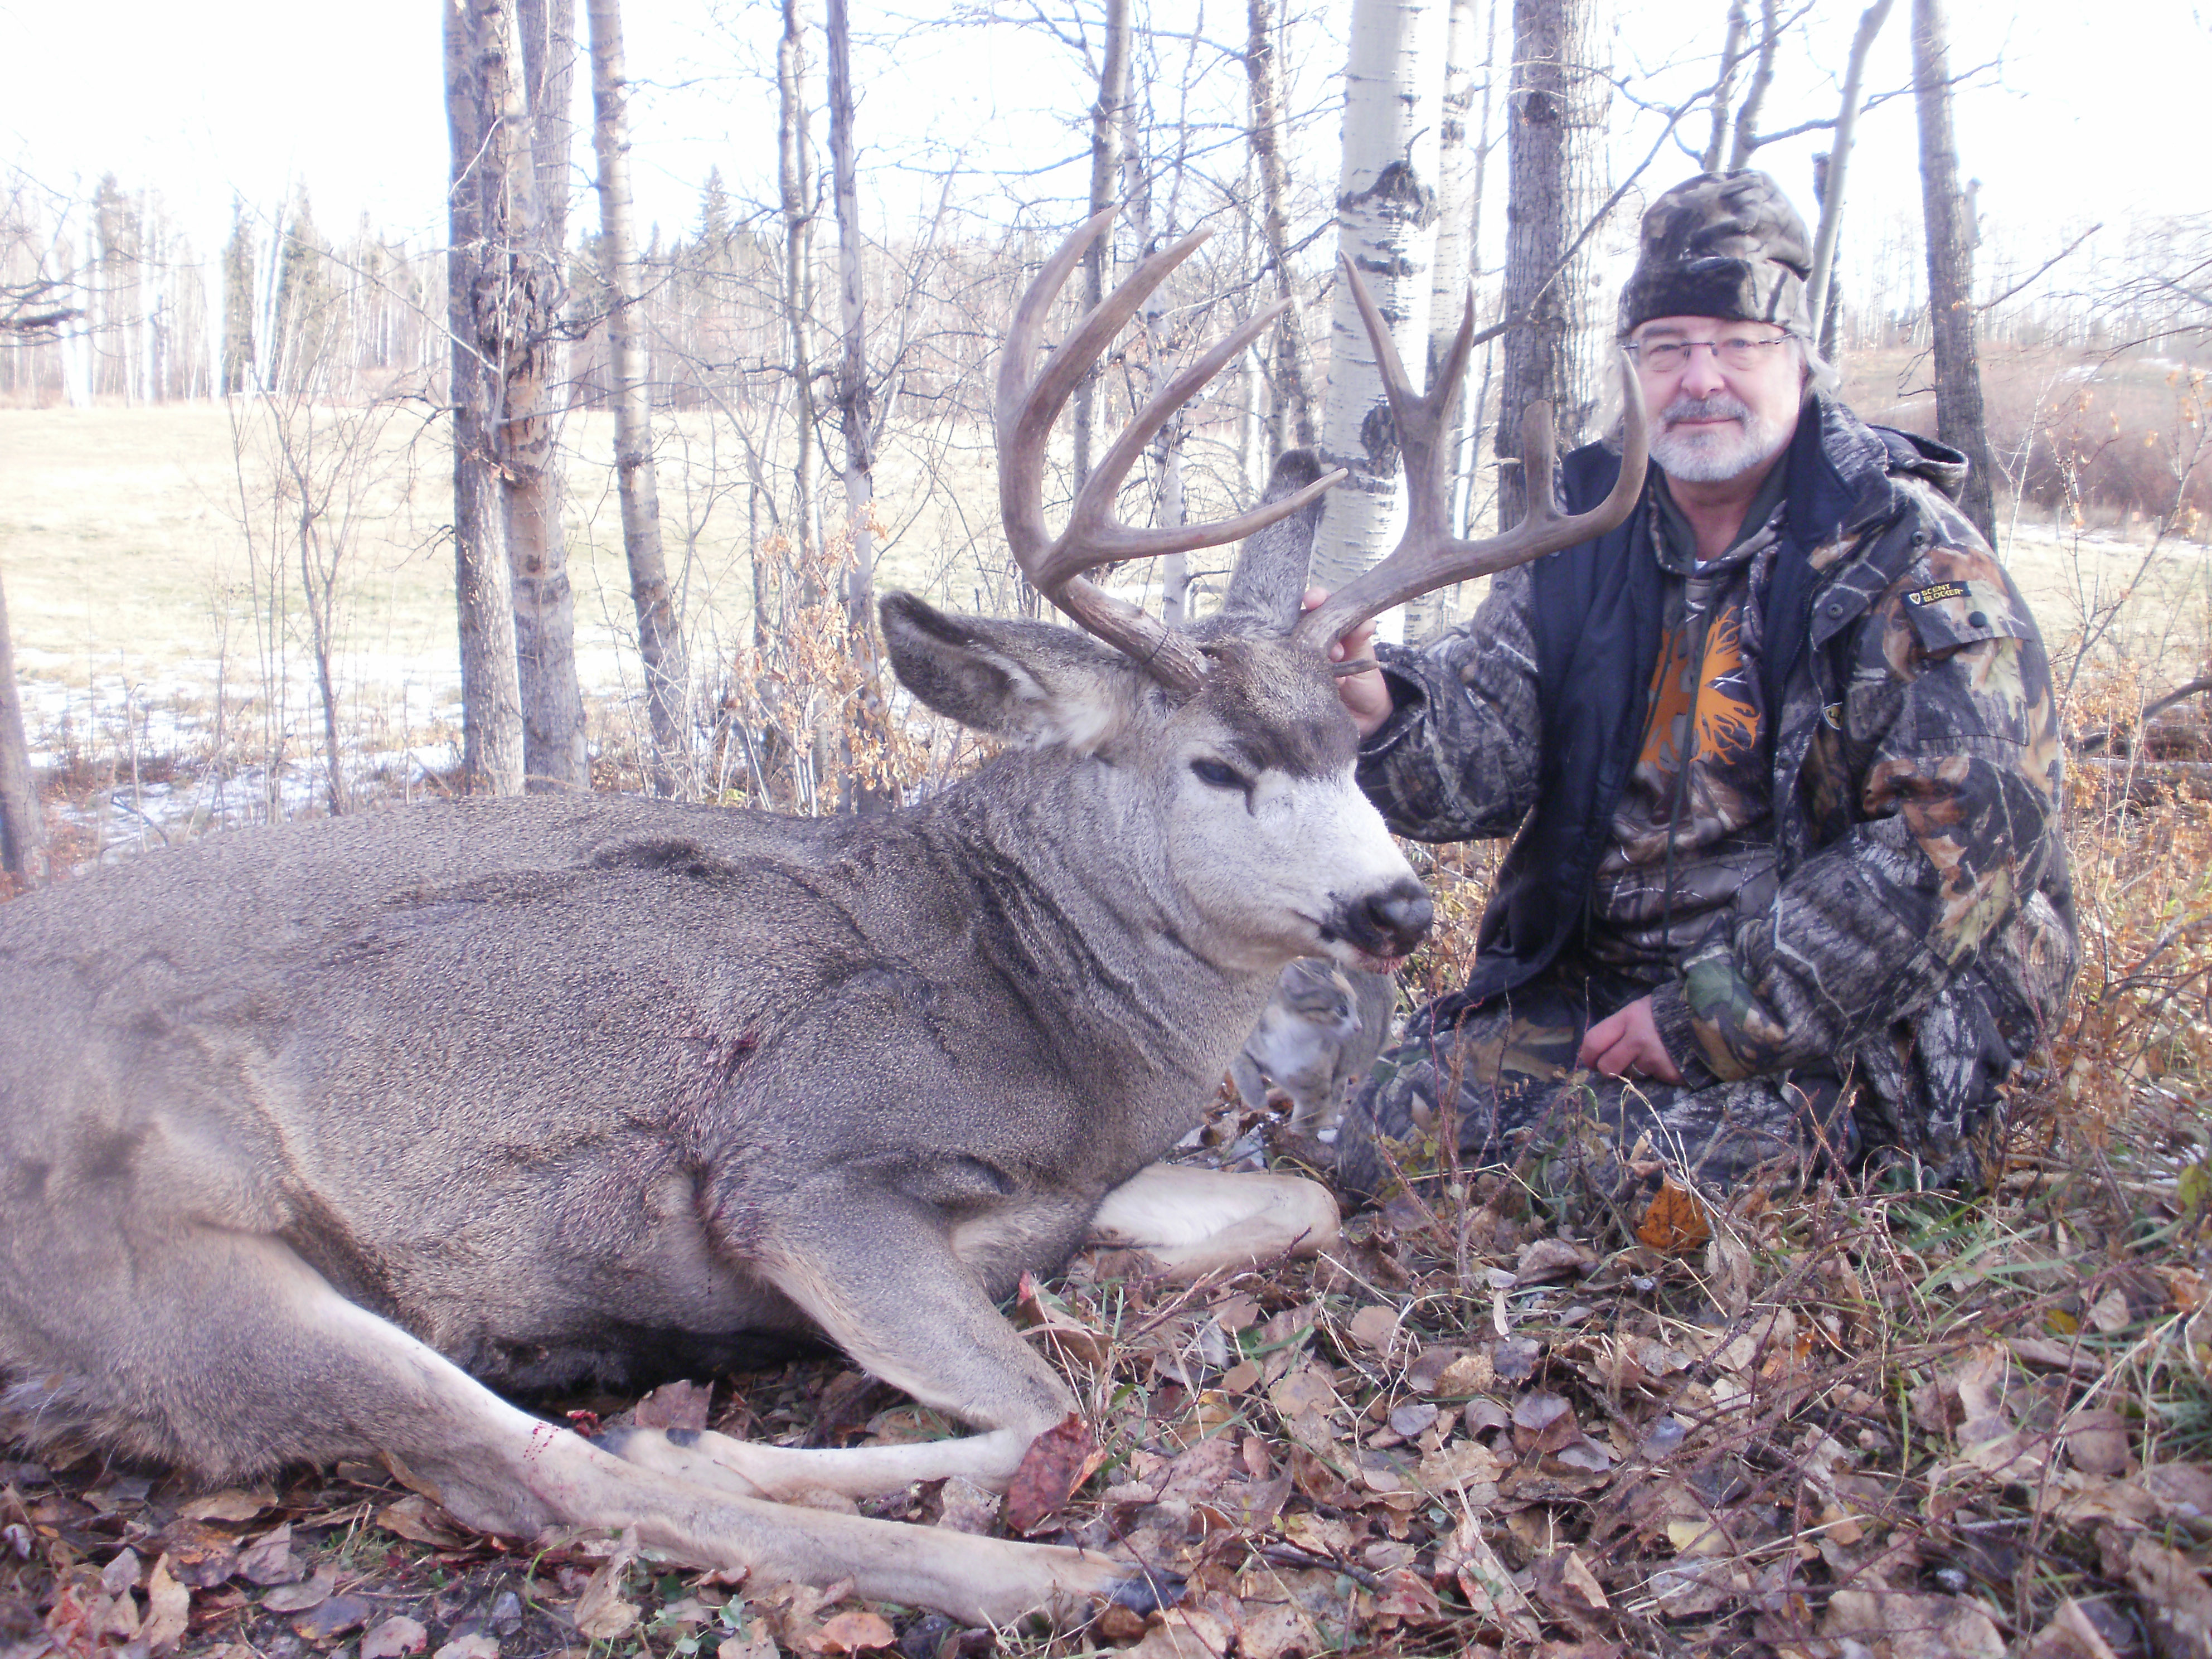 Bill Benigni with his trophy mulie